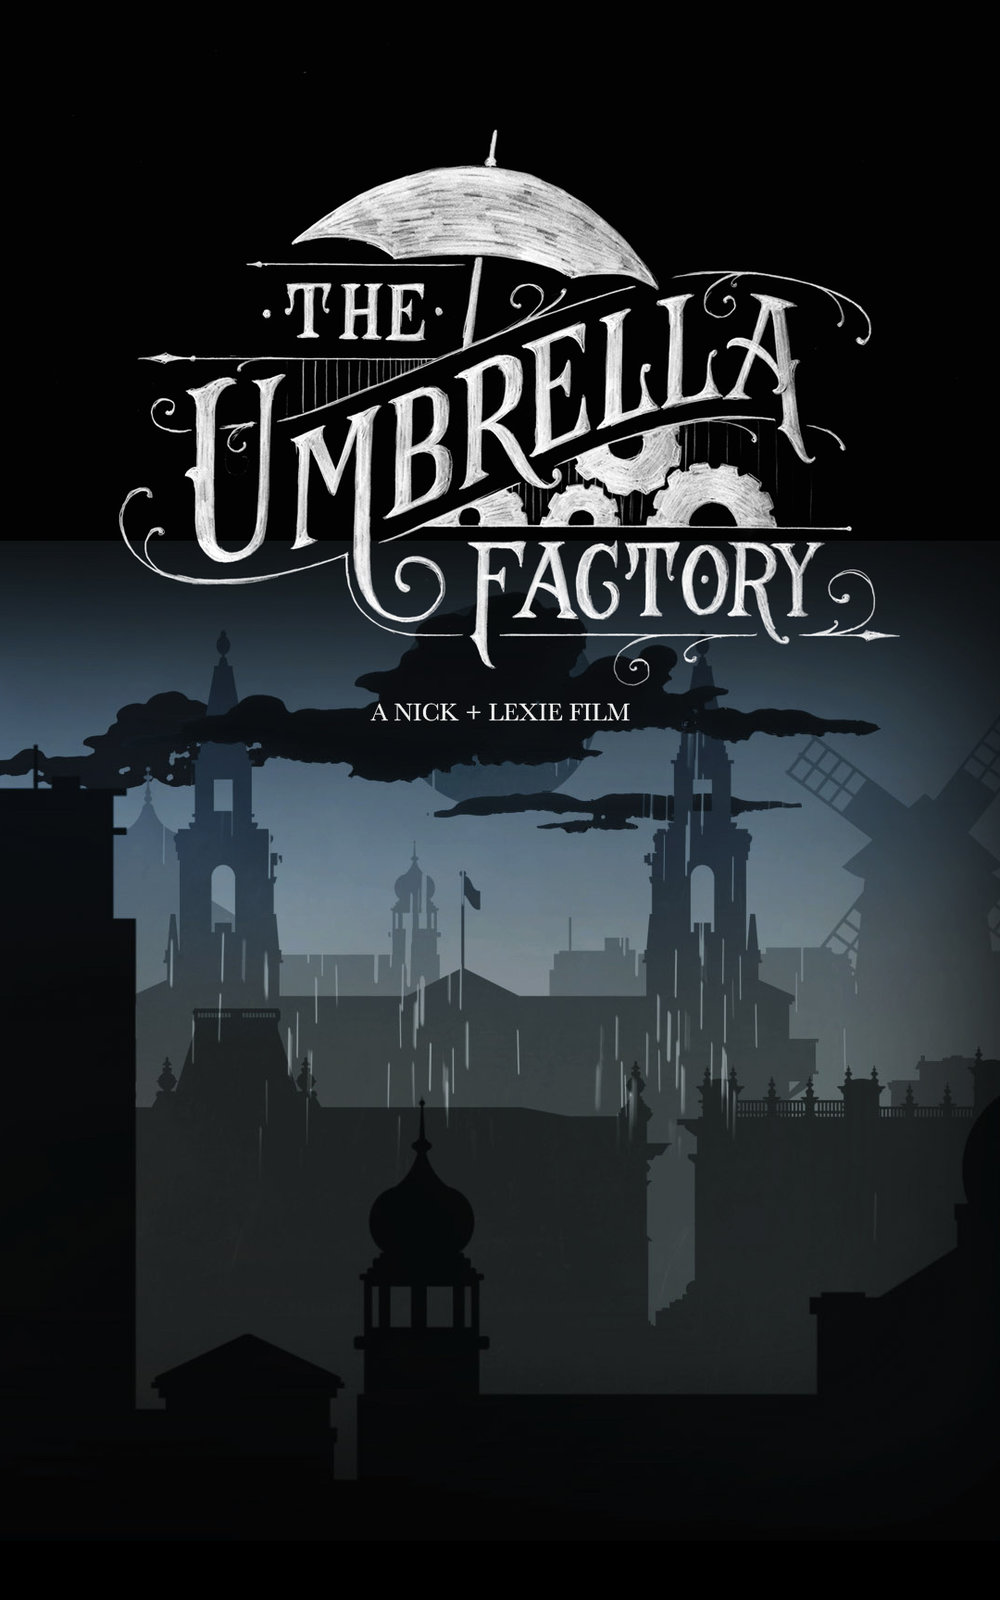 The Umbrella Factory, Short Film